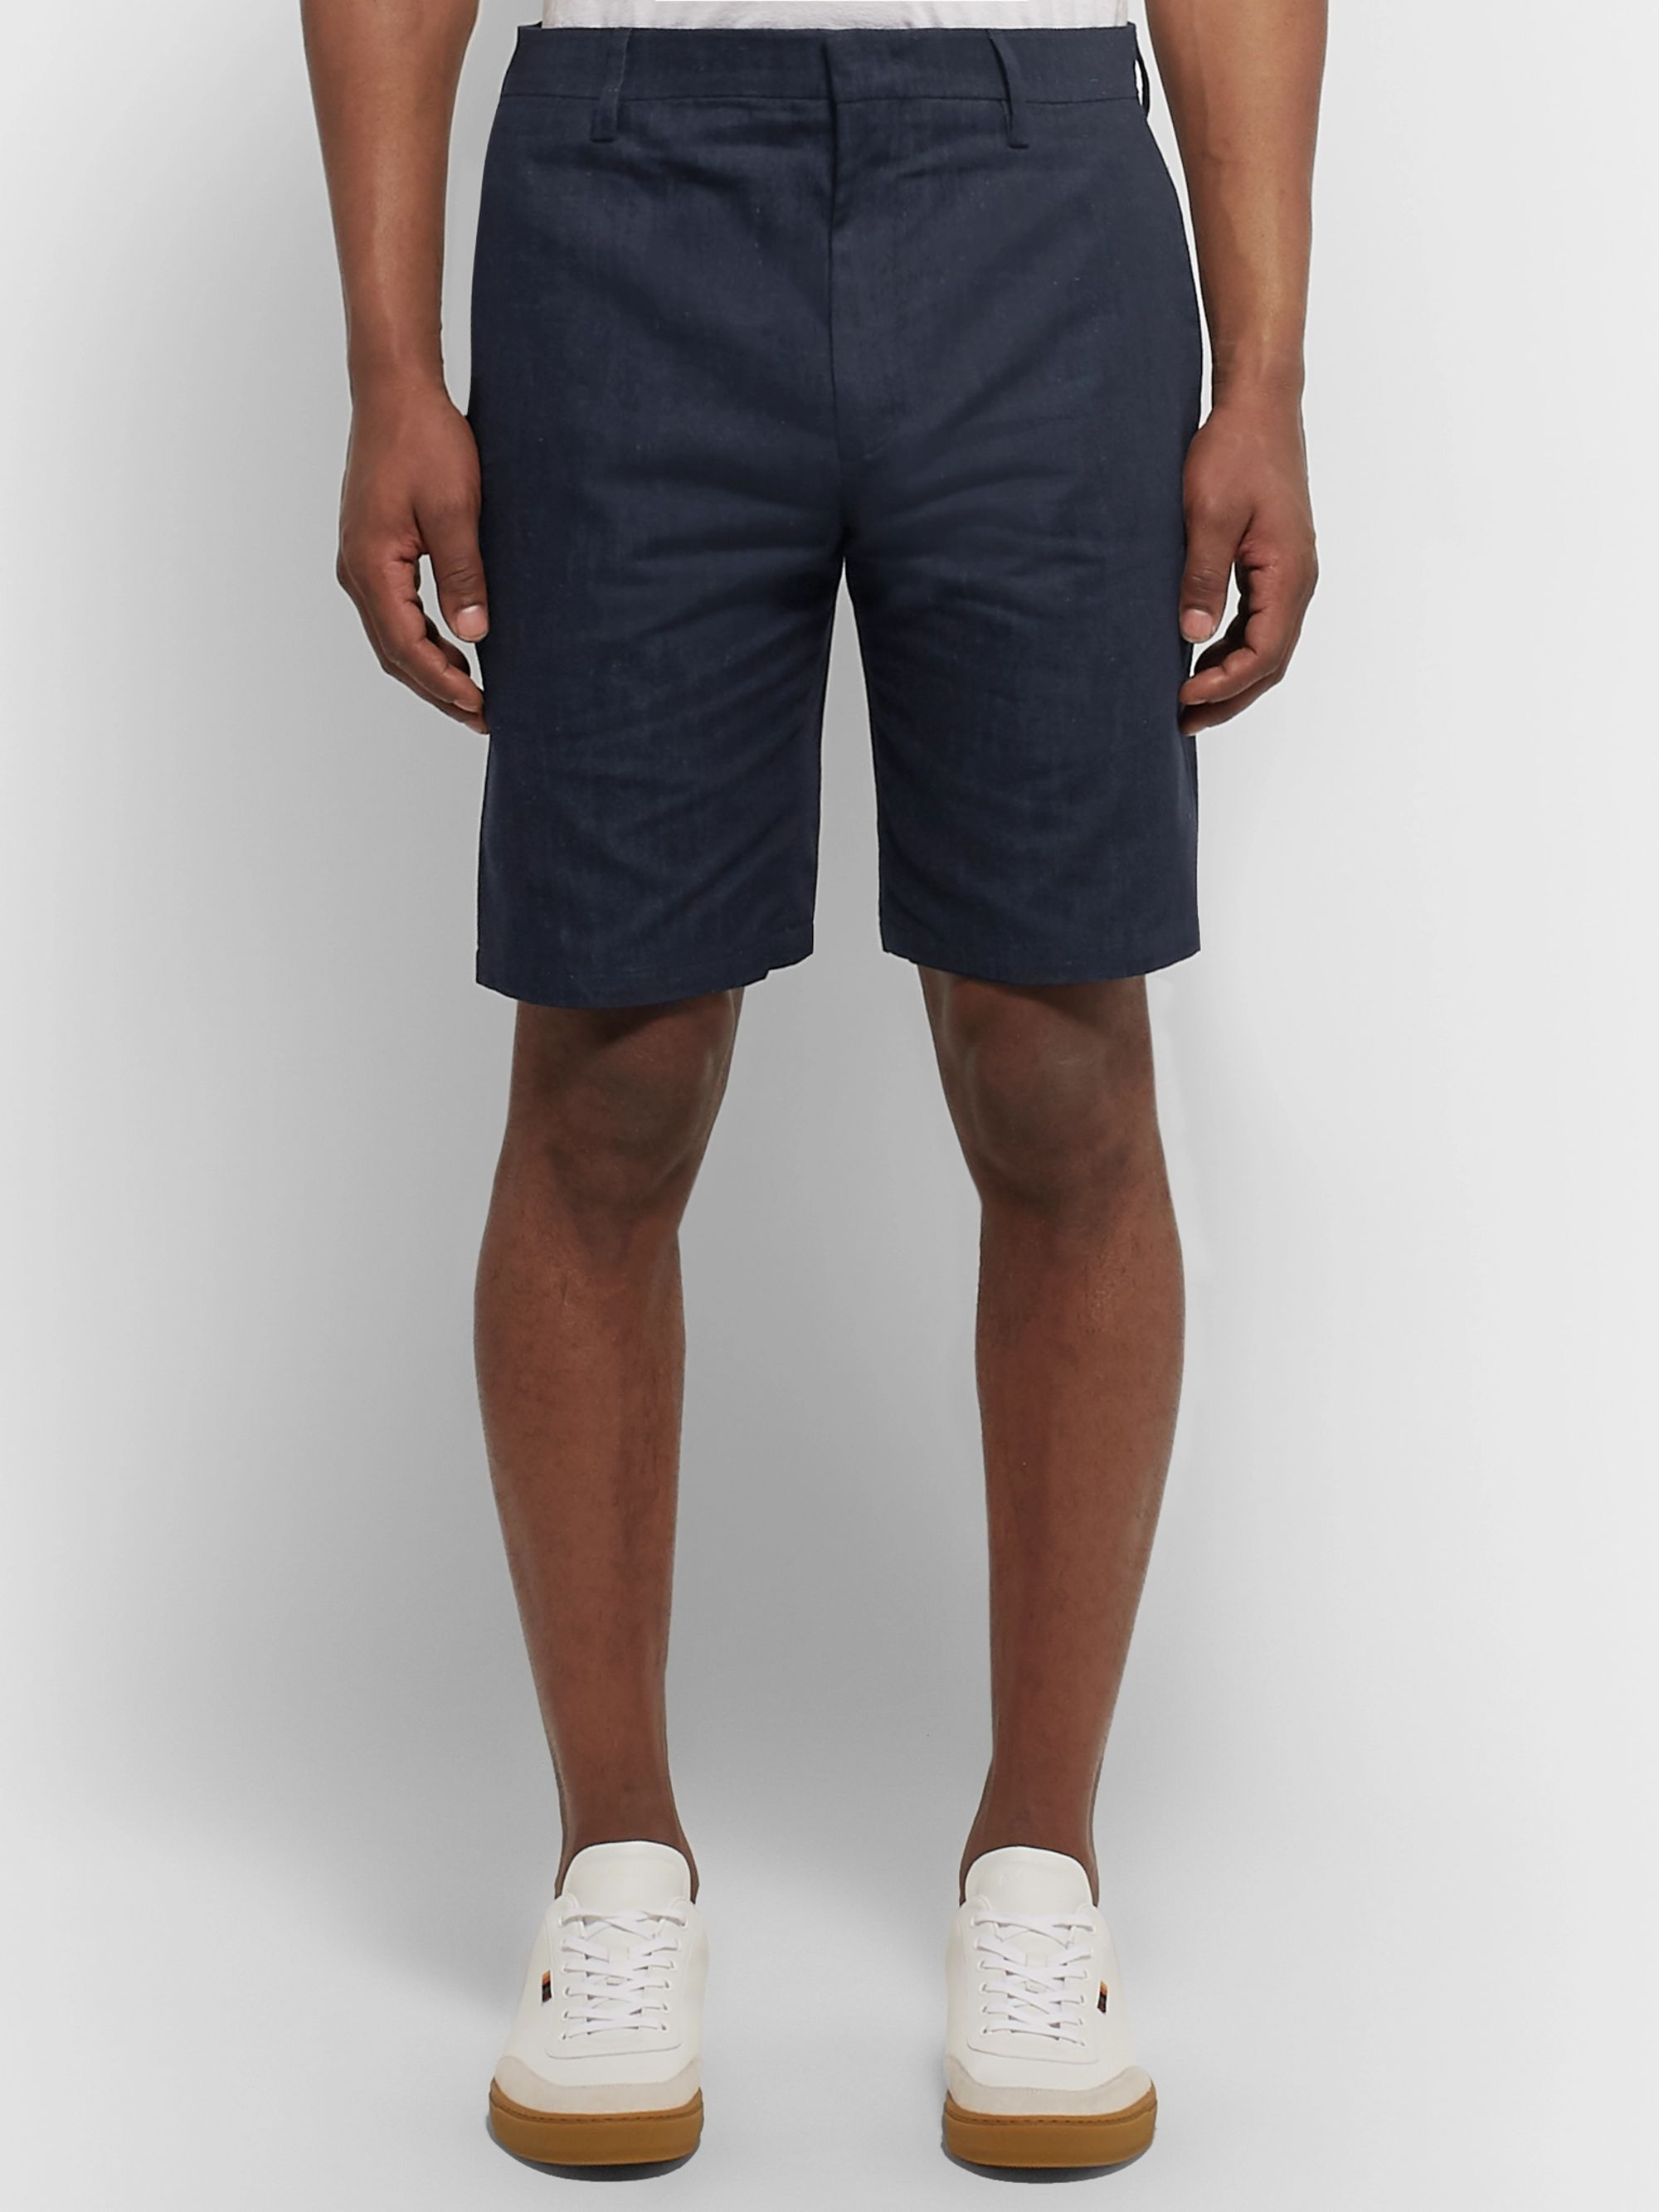 Paul Smith Nep Cotton, Linen and Silk-Blend Denim Shorts